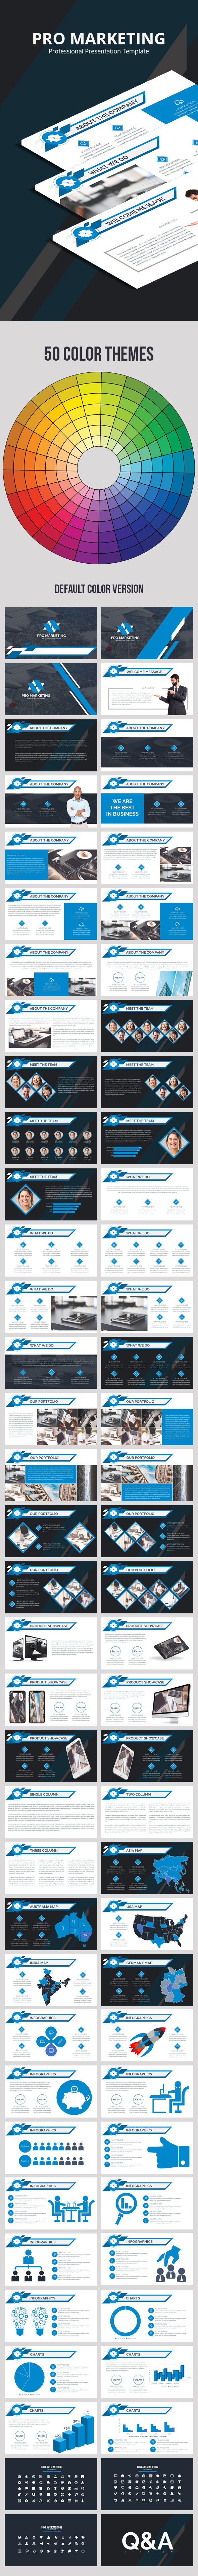 Pro Marketing Presentation Template - Business PowerPoint Templates